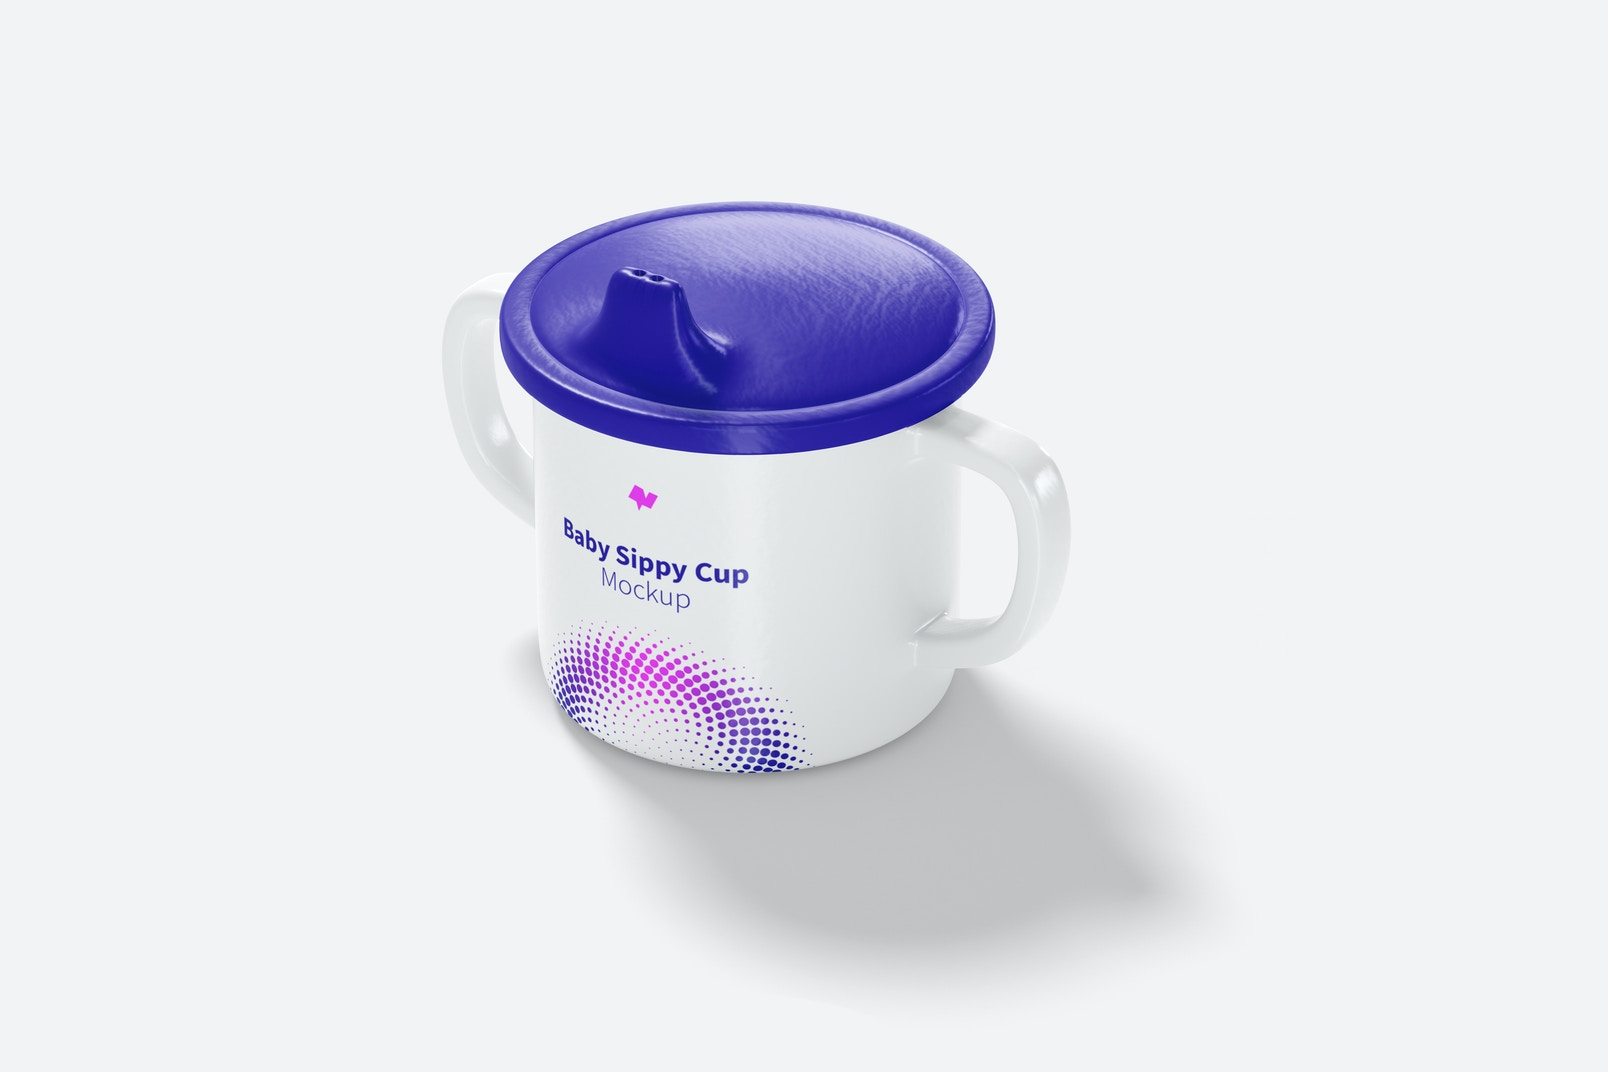 Baby Sippy Cup Mockup